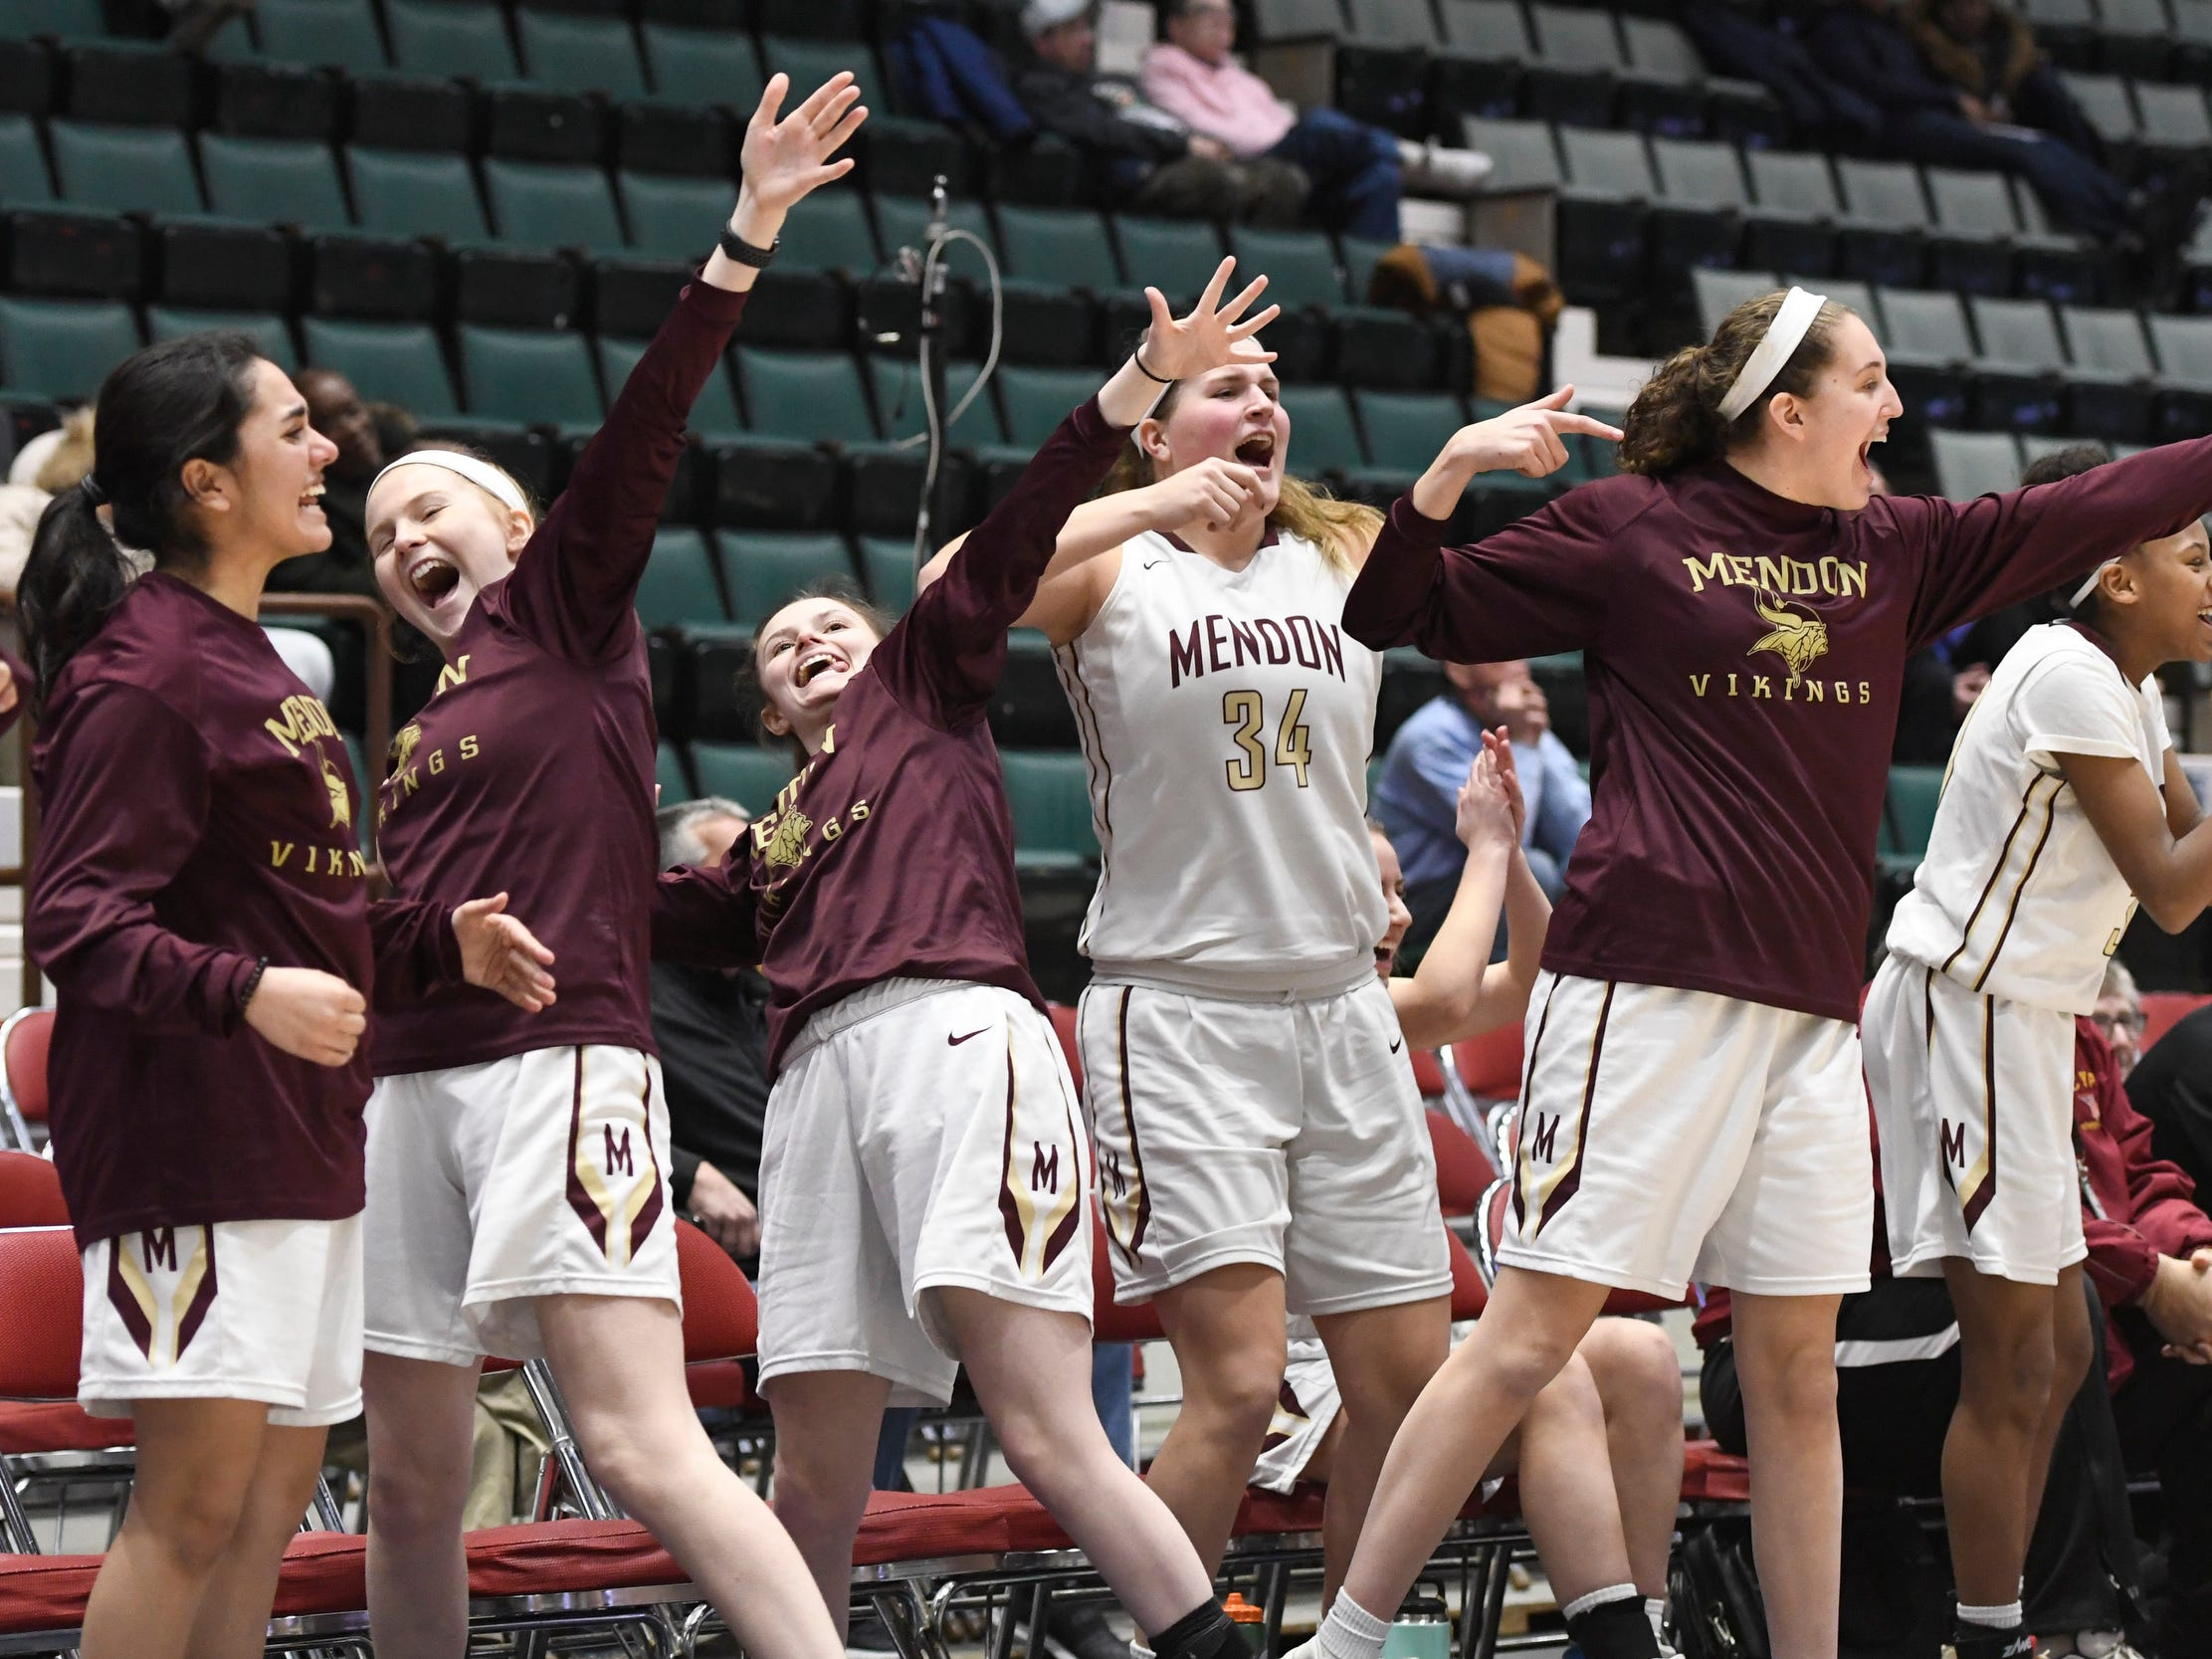 Pittsford Mendon basketball players cheer following a three-pointer scored against James Madison to come within one point of their opponents in the fourth quarter of their Girls Class A Federation Tournament of Champions semifinal at Cool Insuring Arena on Friday March 23, 2019, in Glens Falls.